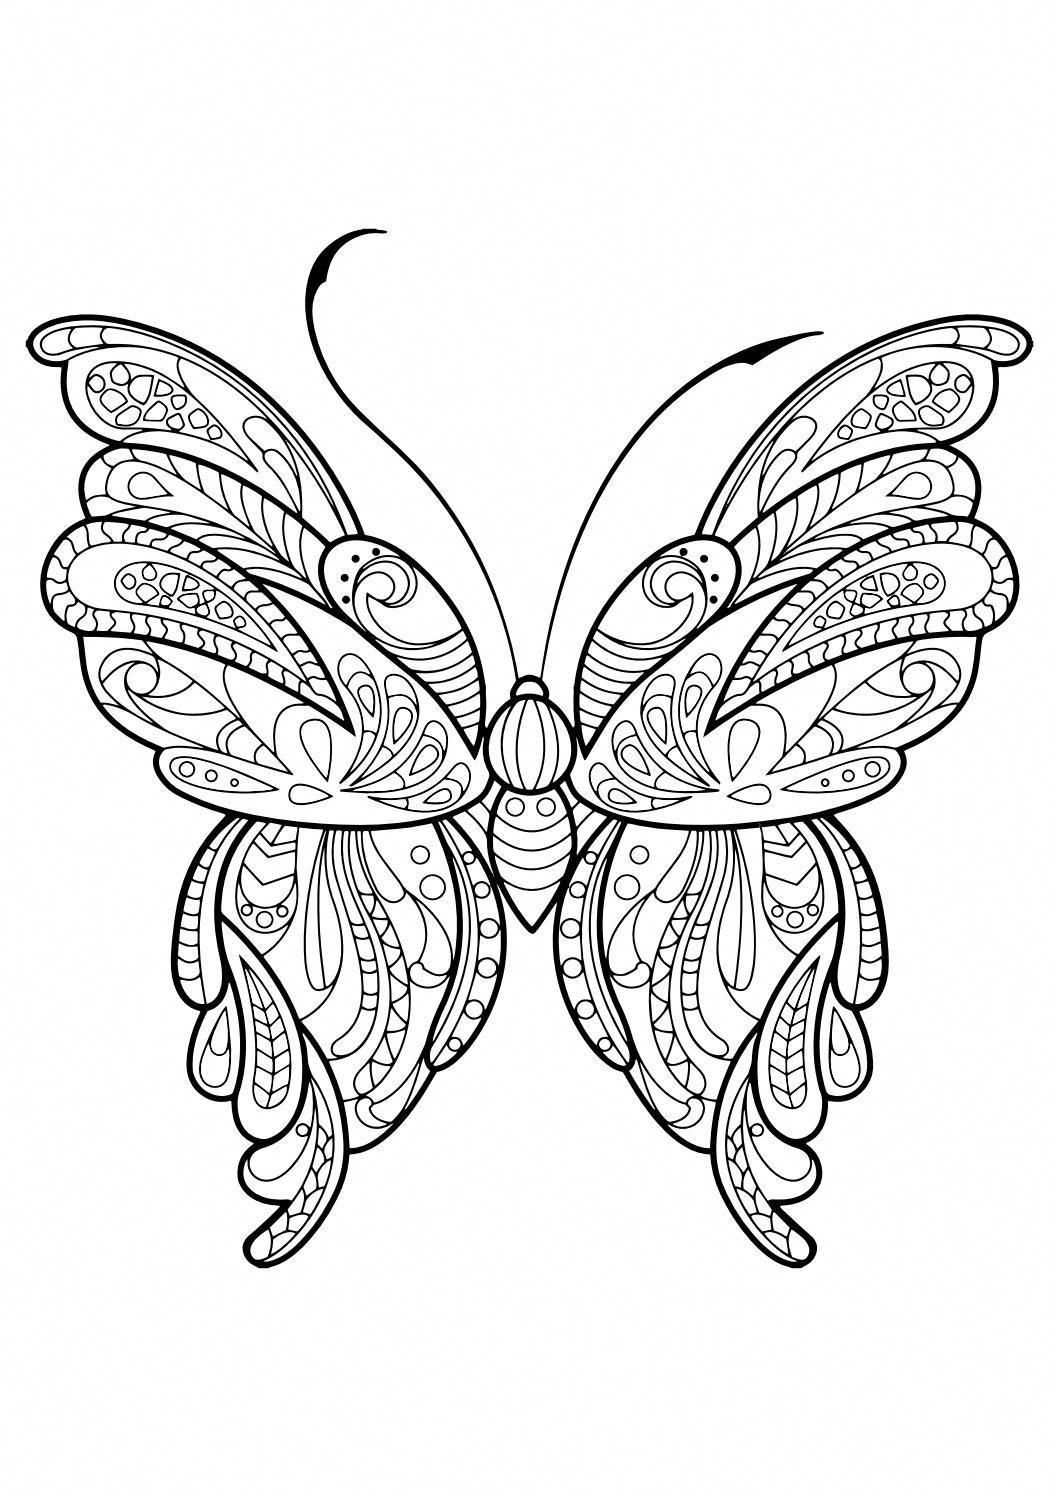 Coloring Page Of Butterfly Youngandtae Com Butterfly Pictures To Color Butterfly Coloring Page Animal Coloring Pages [ 1497 x 1059 Pixel ]